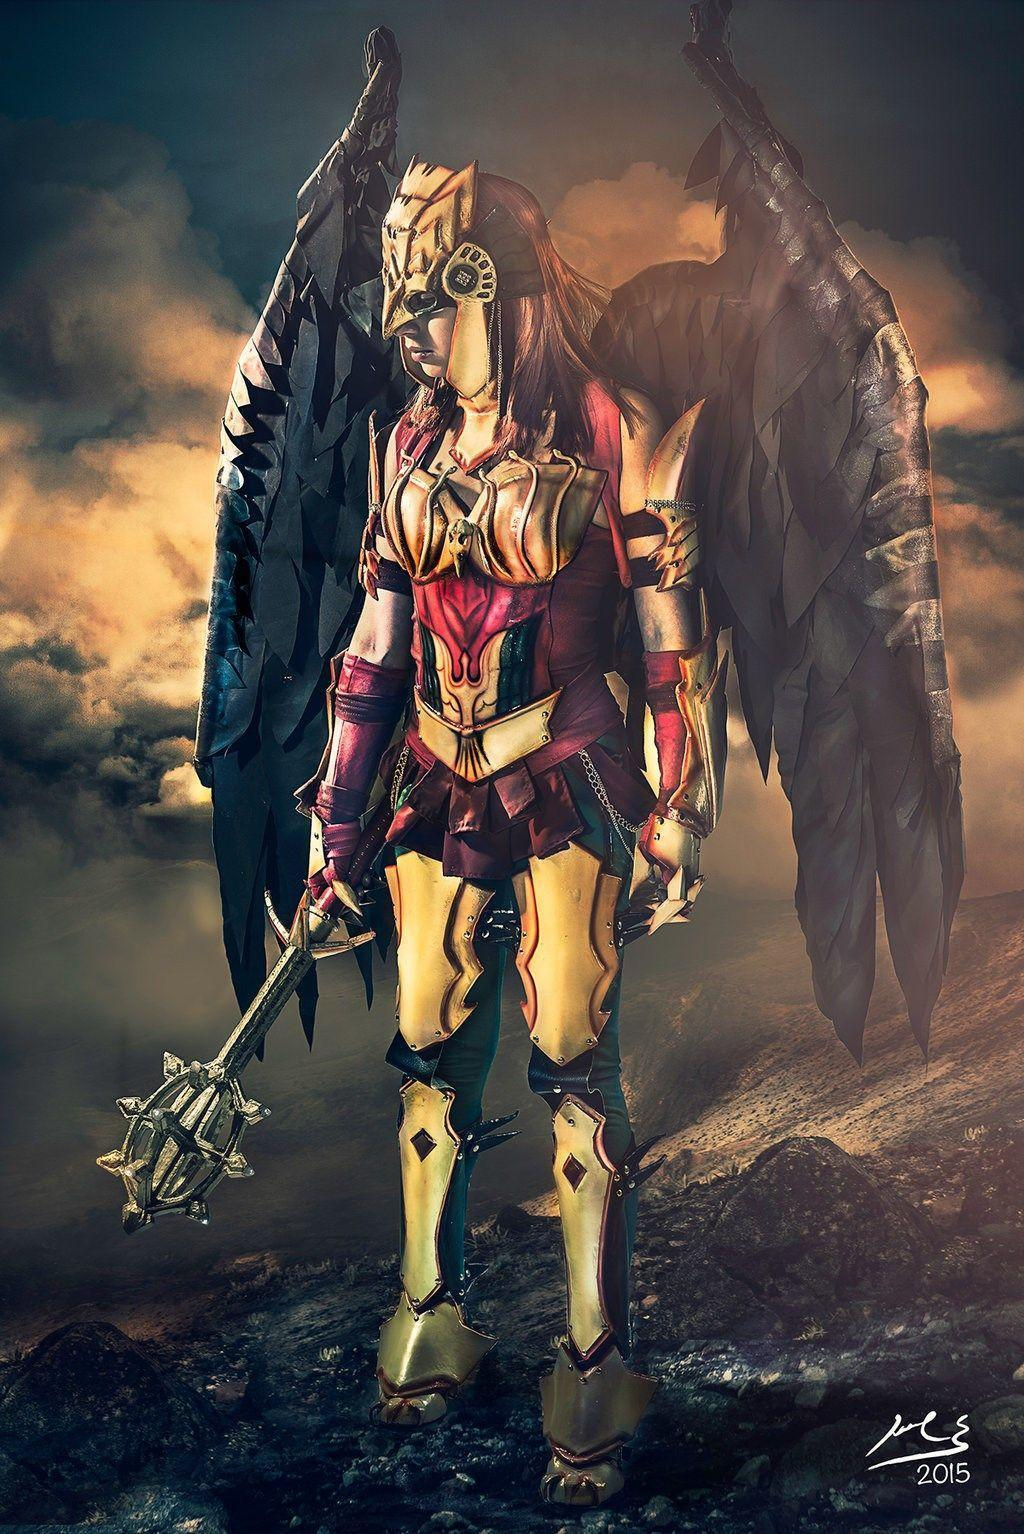 dc hawkgirl wallpapers » Wallppapers Gallery